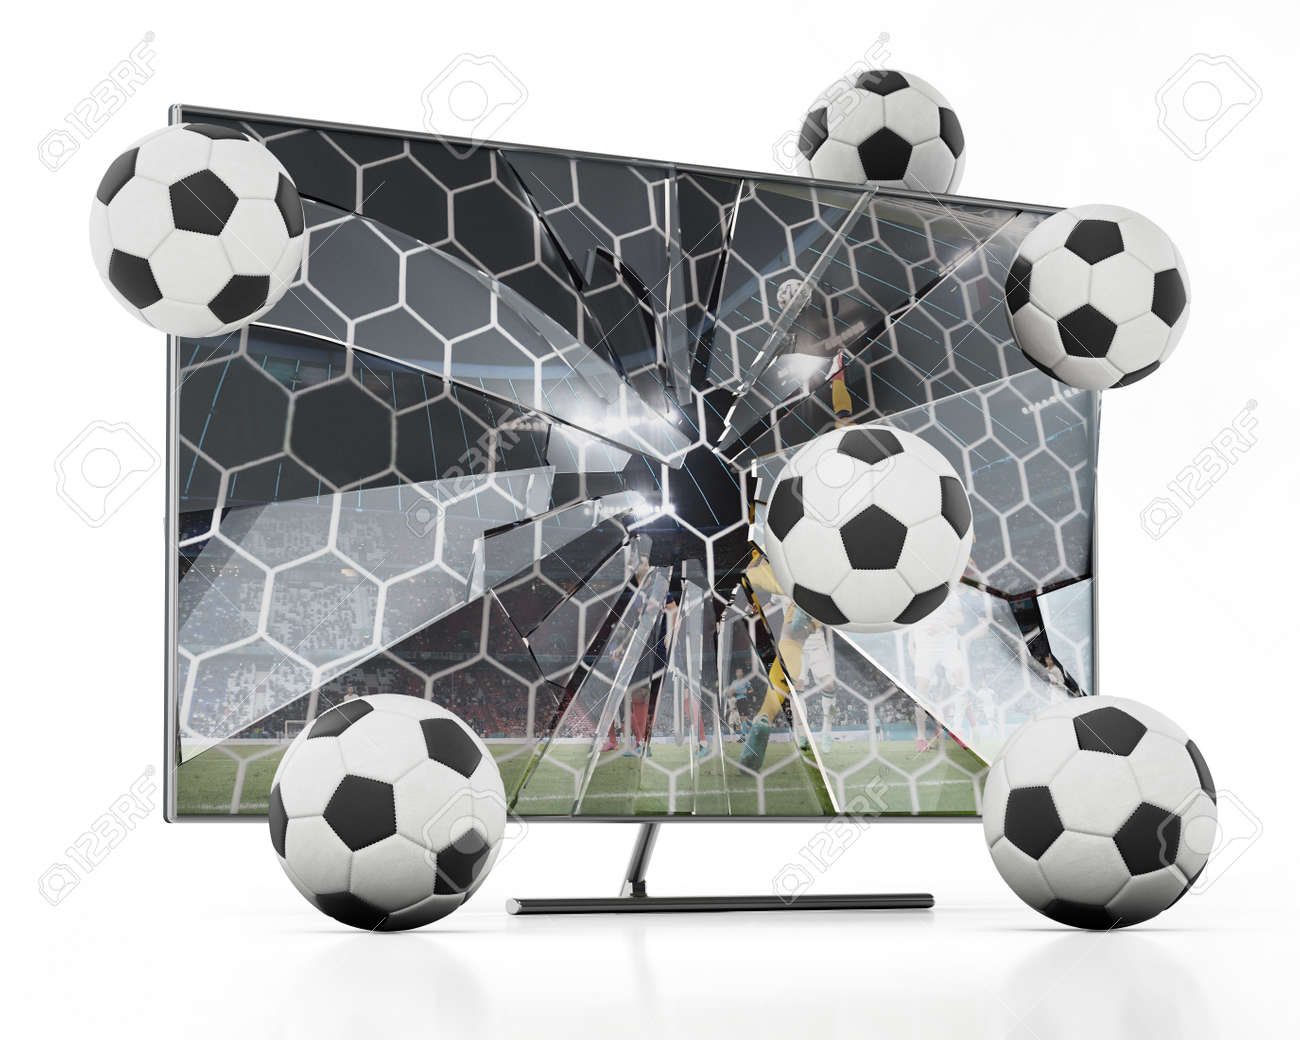 Soccer balls floating out of LCD TV with shattered screen. 3D illustration. - 173442125